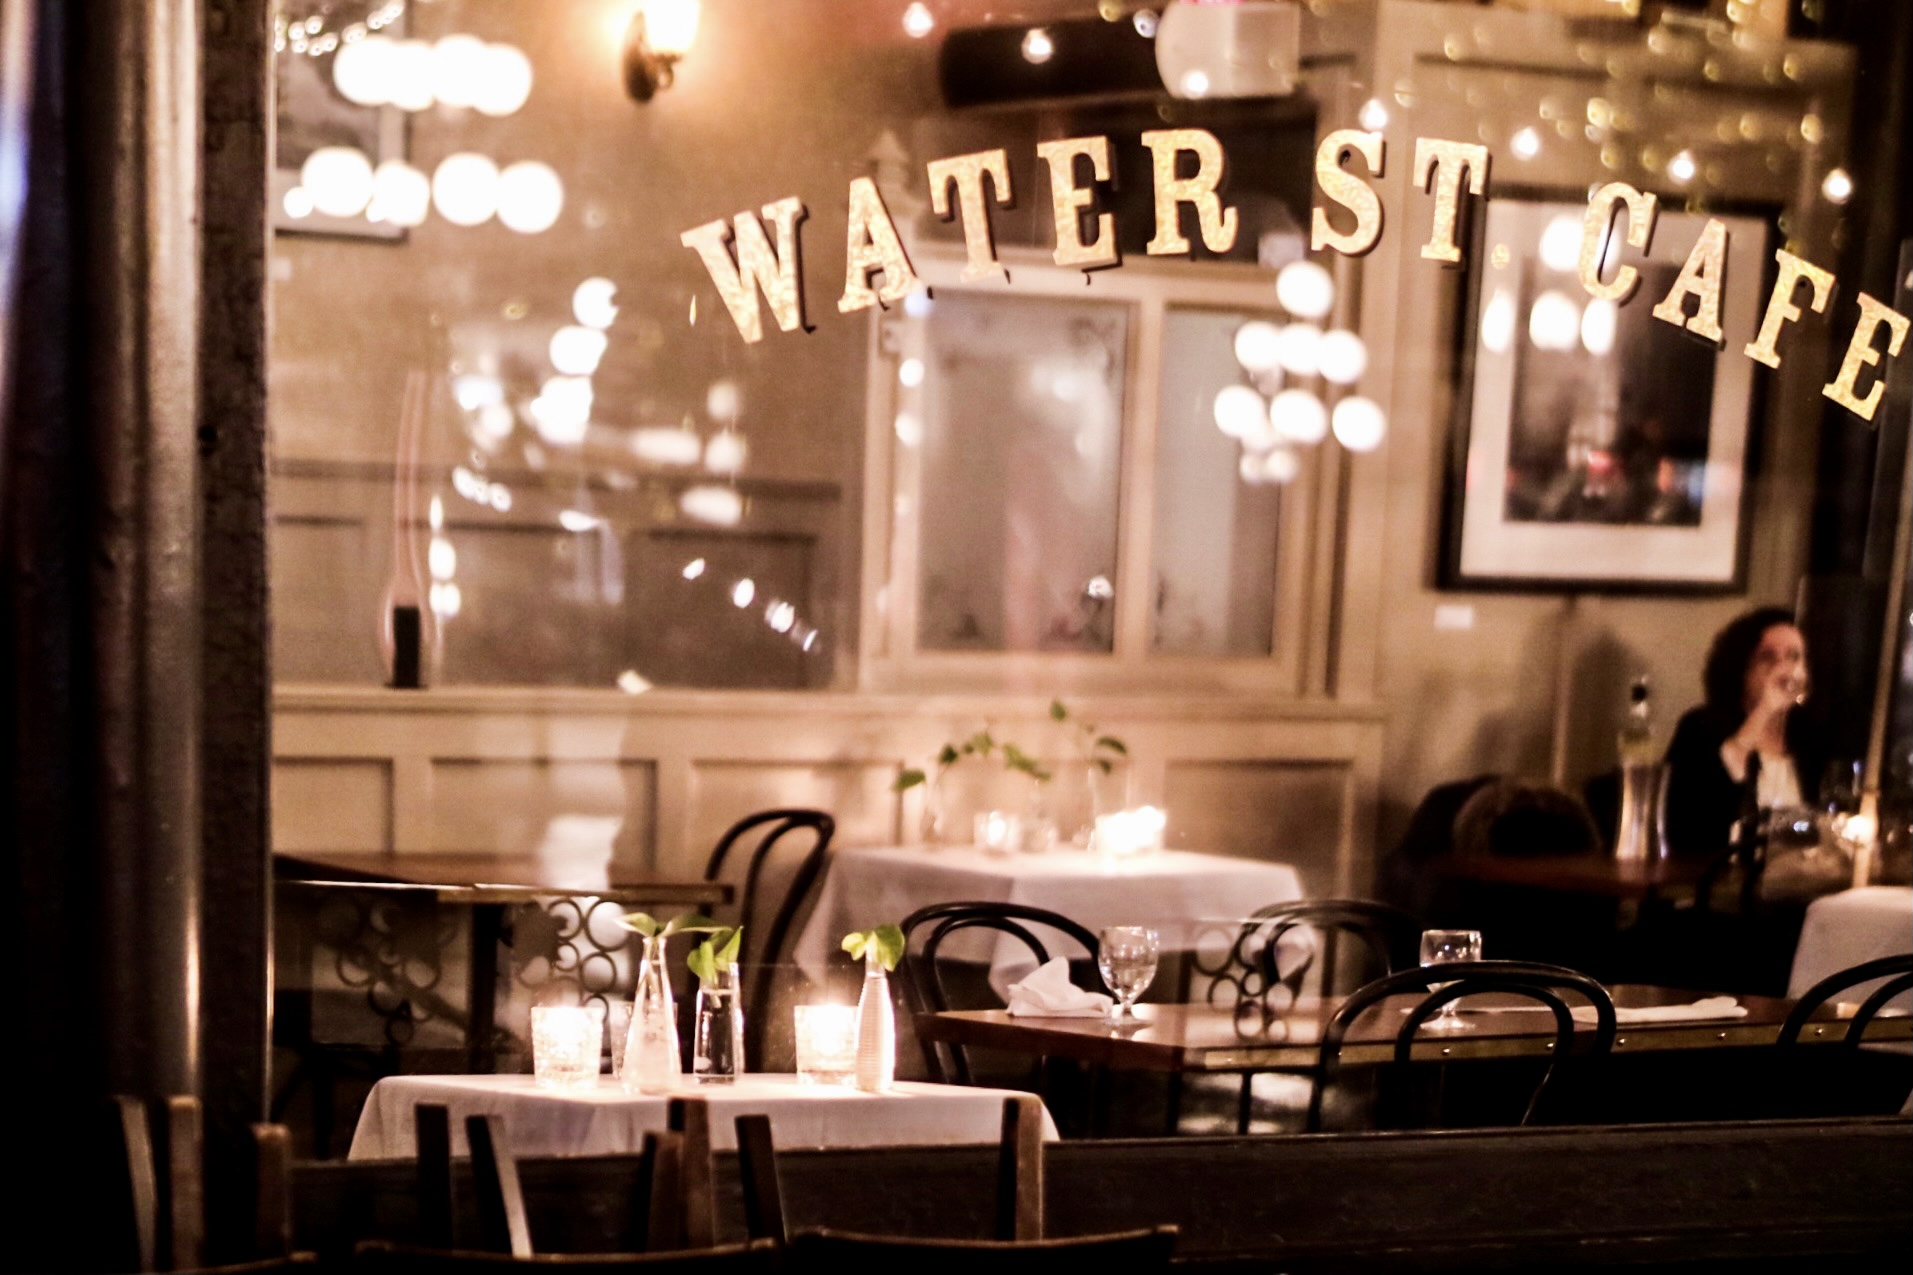 Water St Cafe